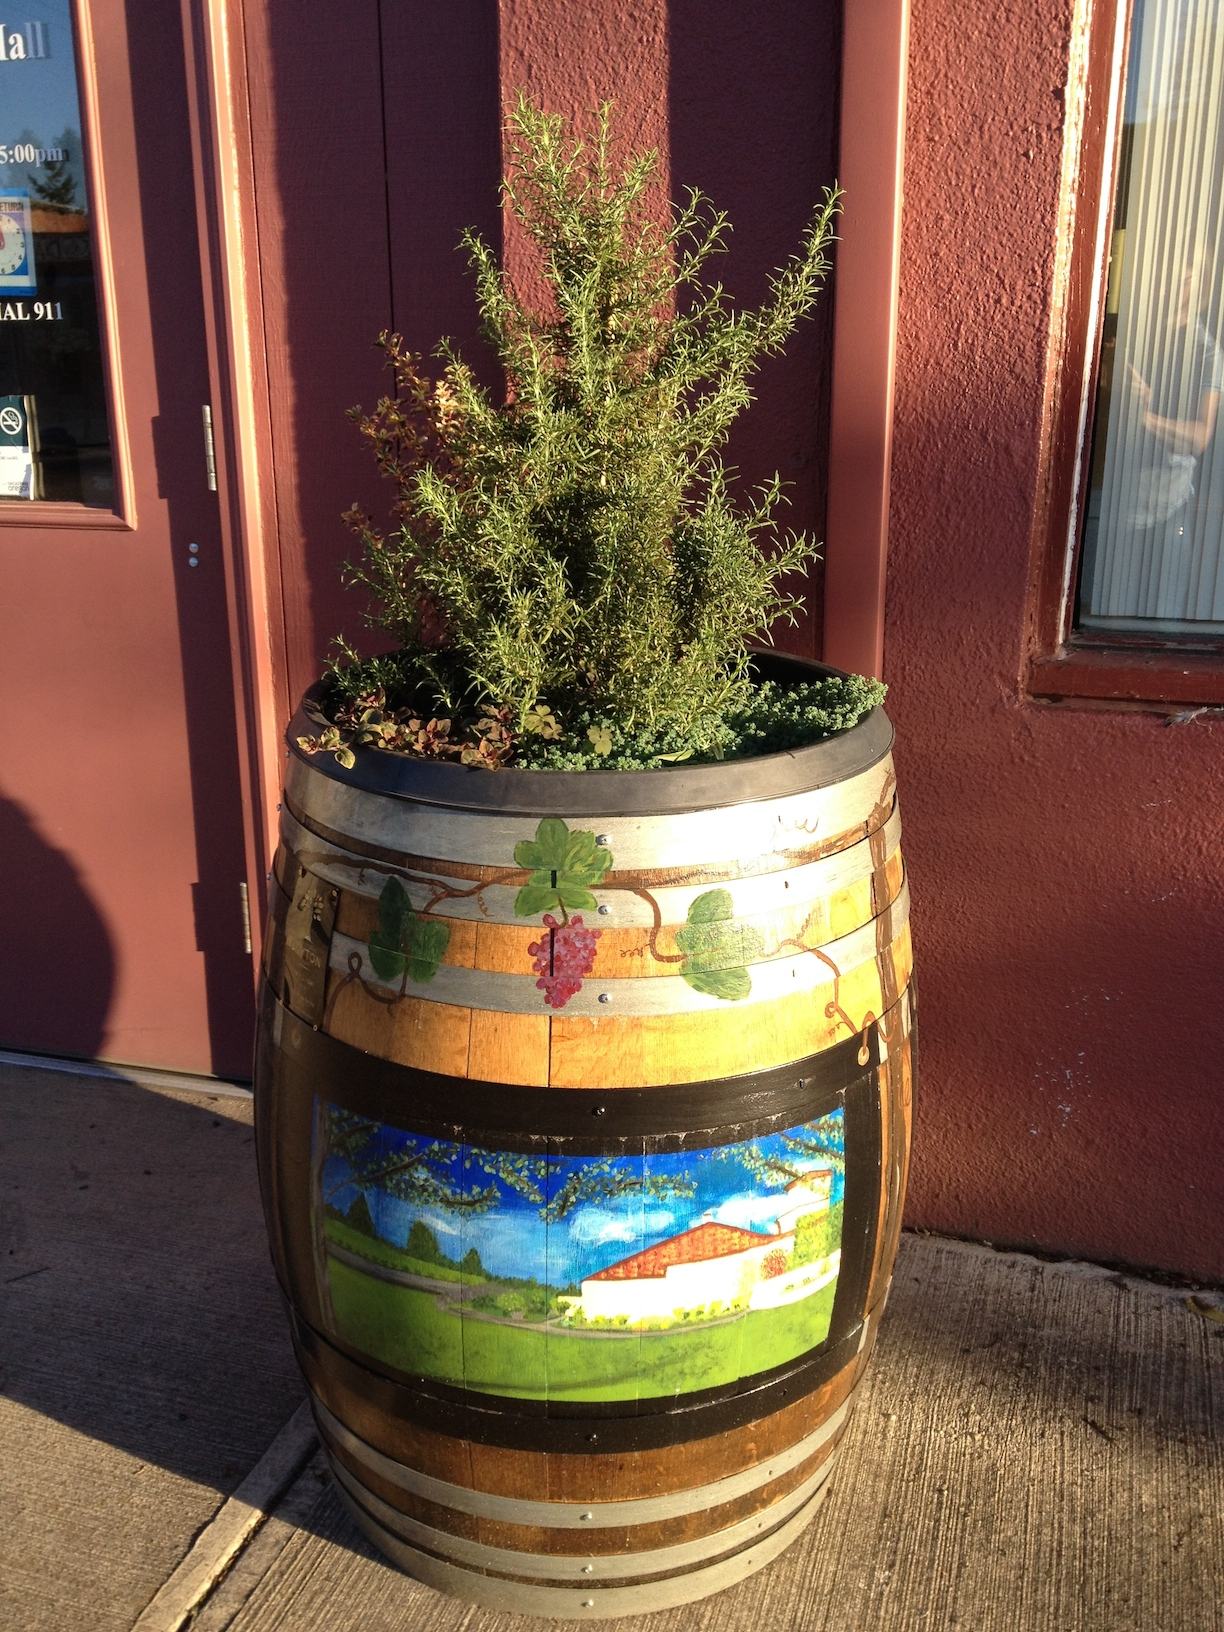 Wine barrel with plants and painted with landscape scene